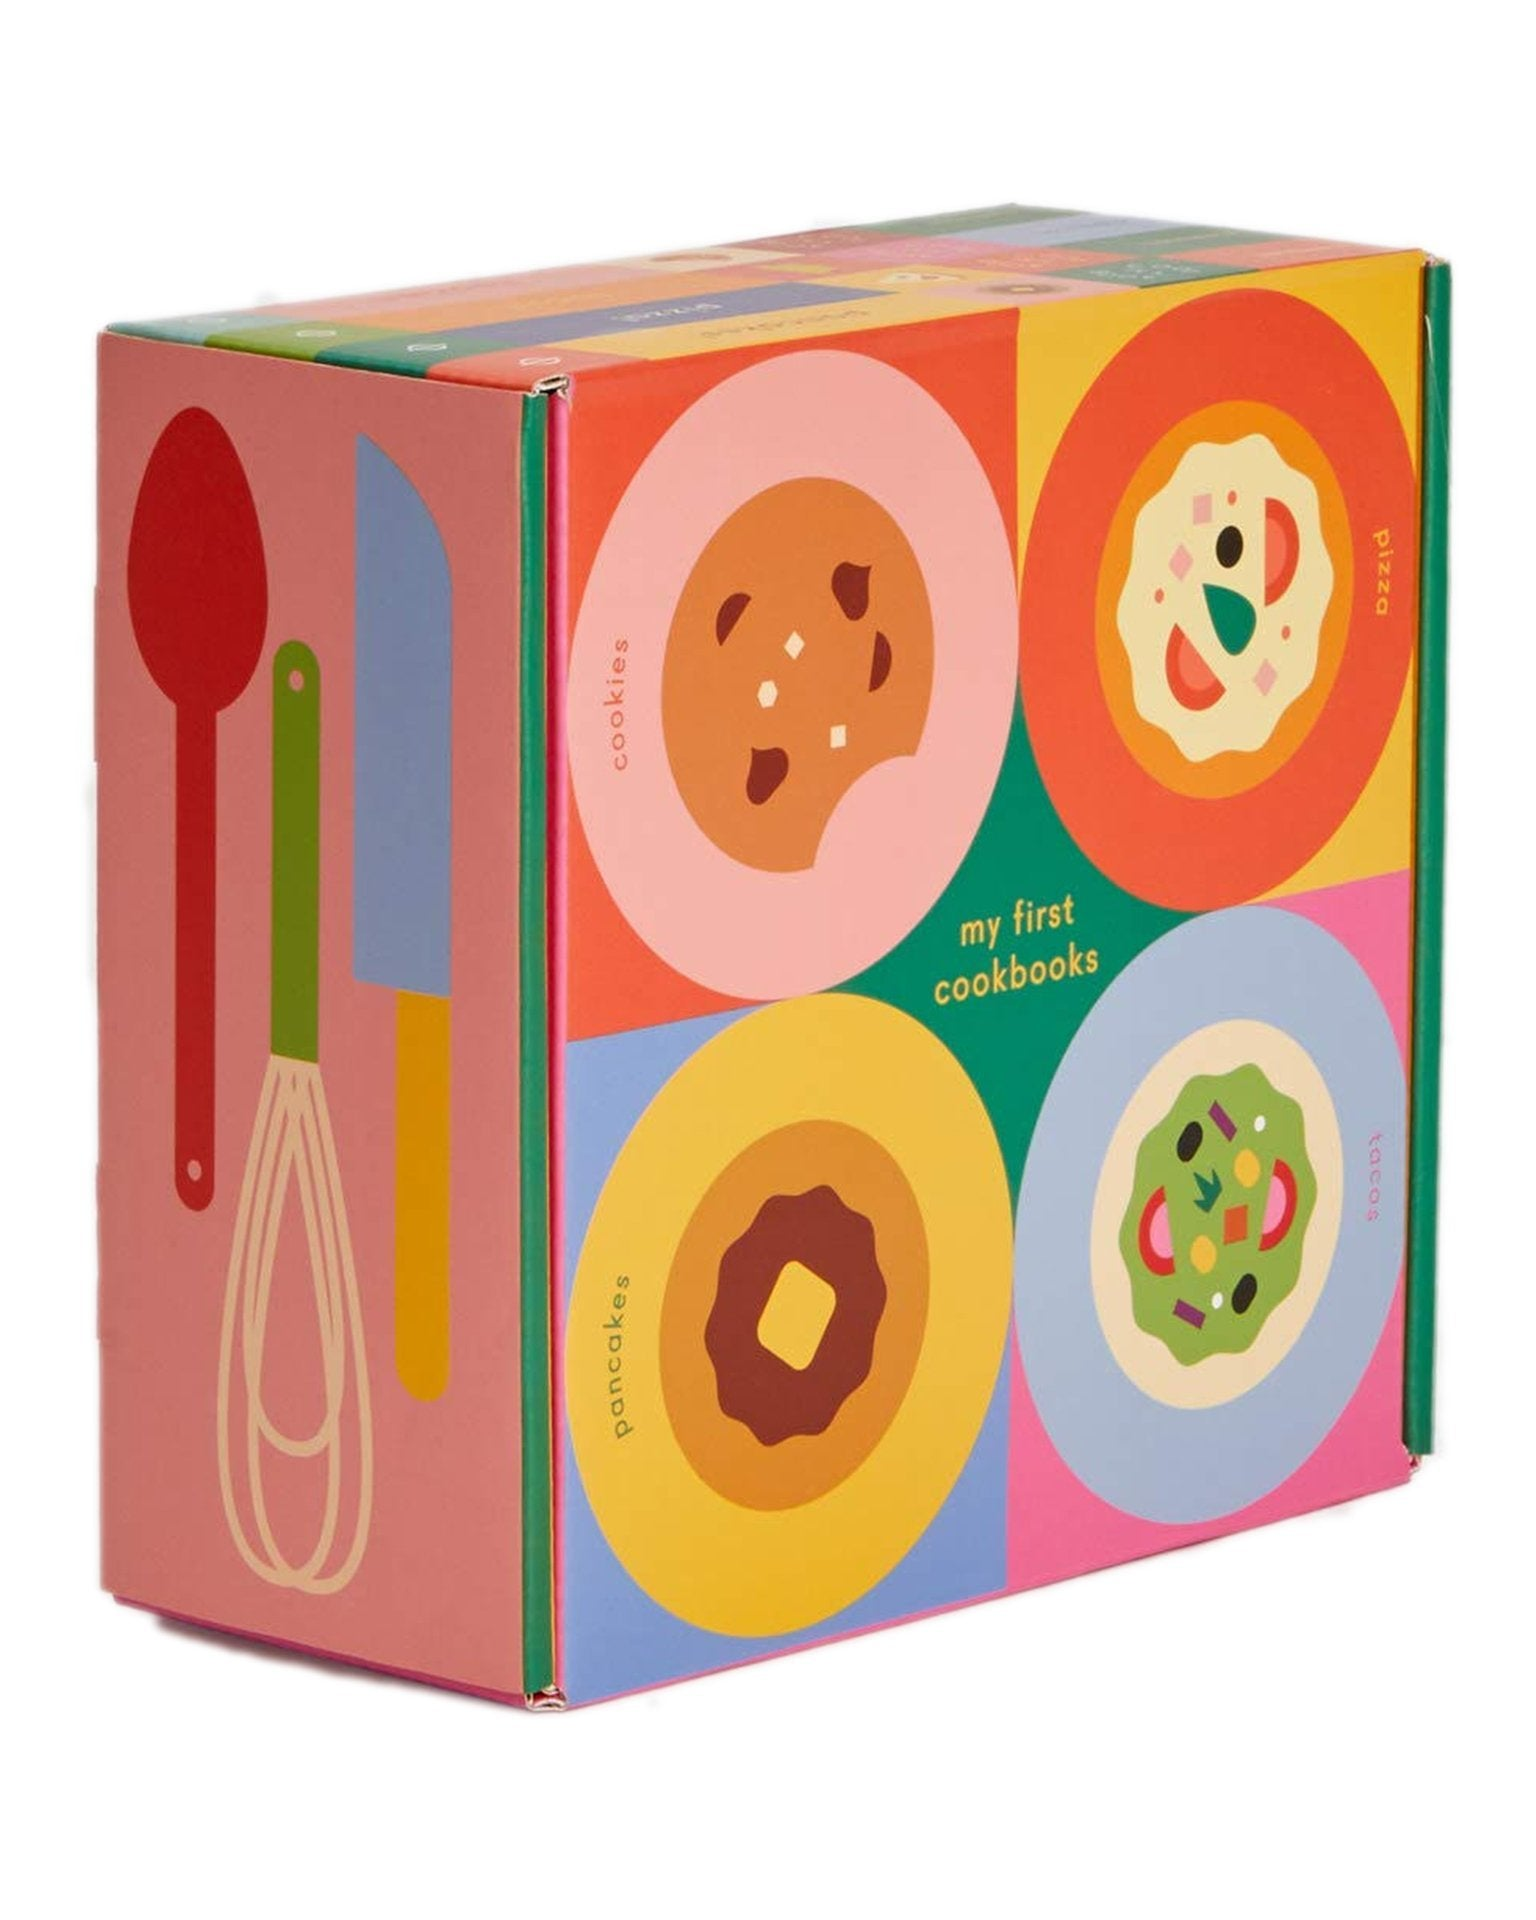 my first cookbooks boxed set